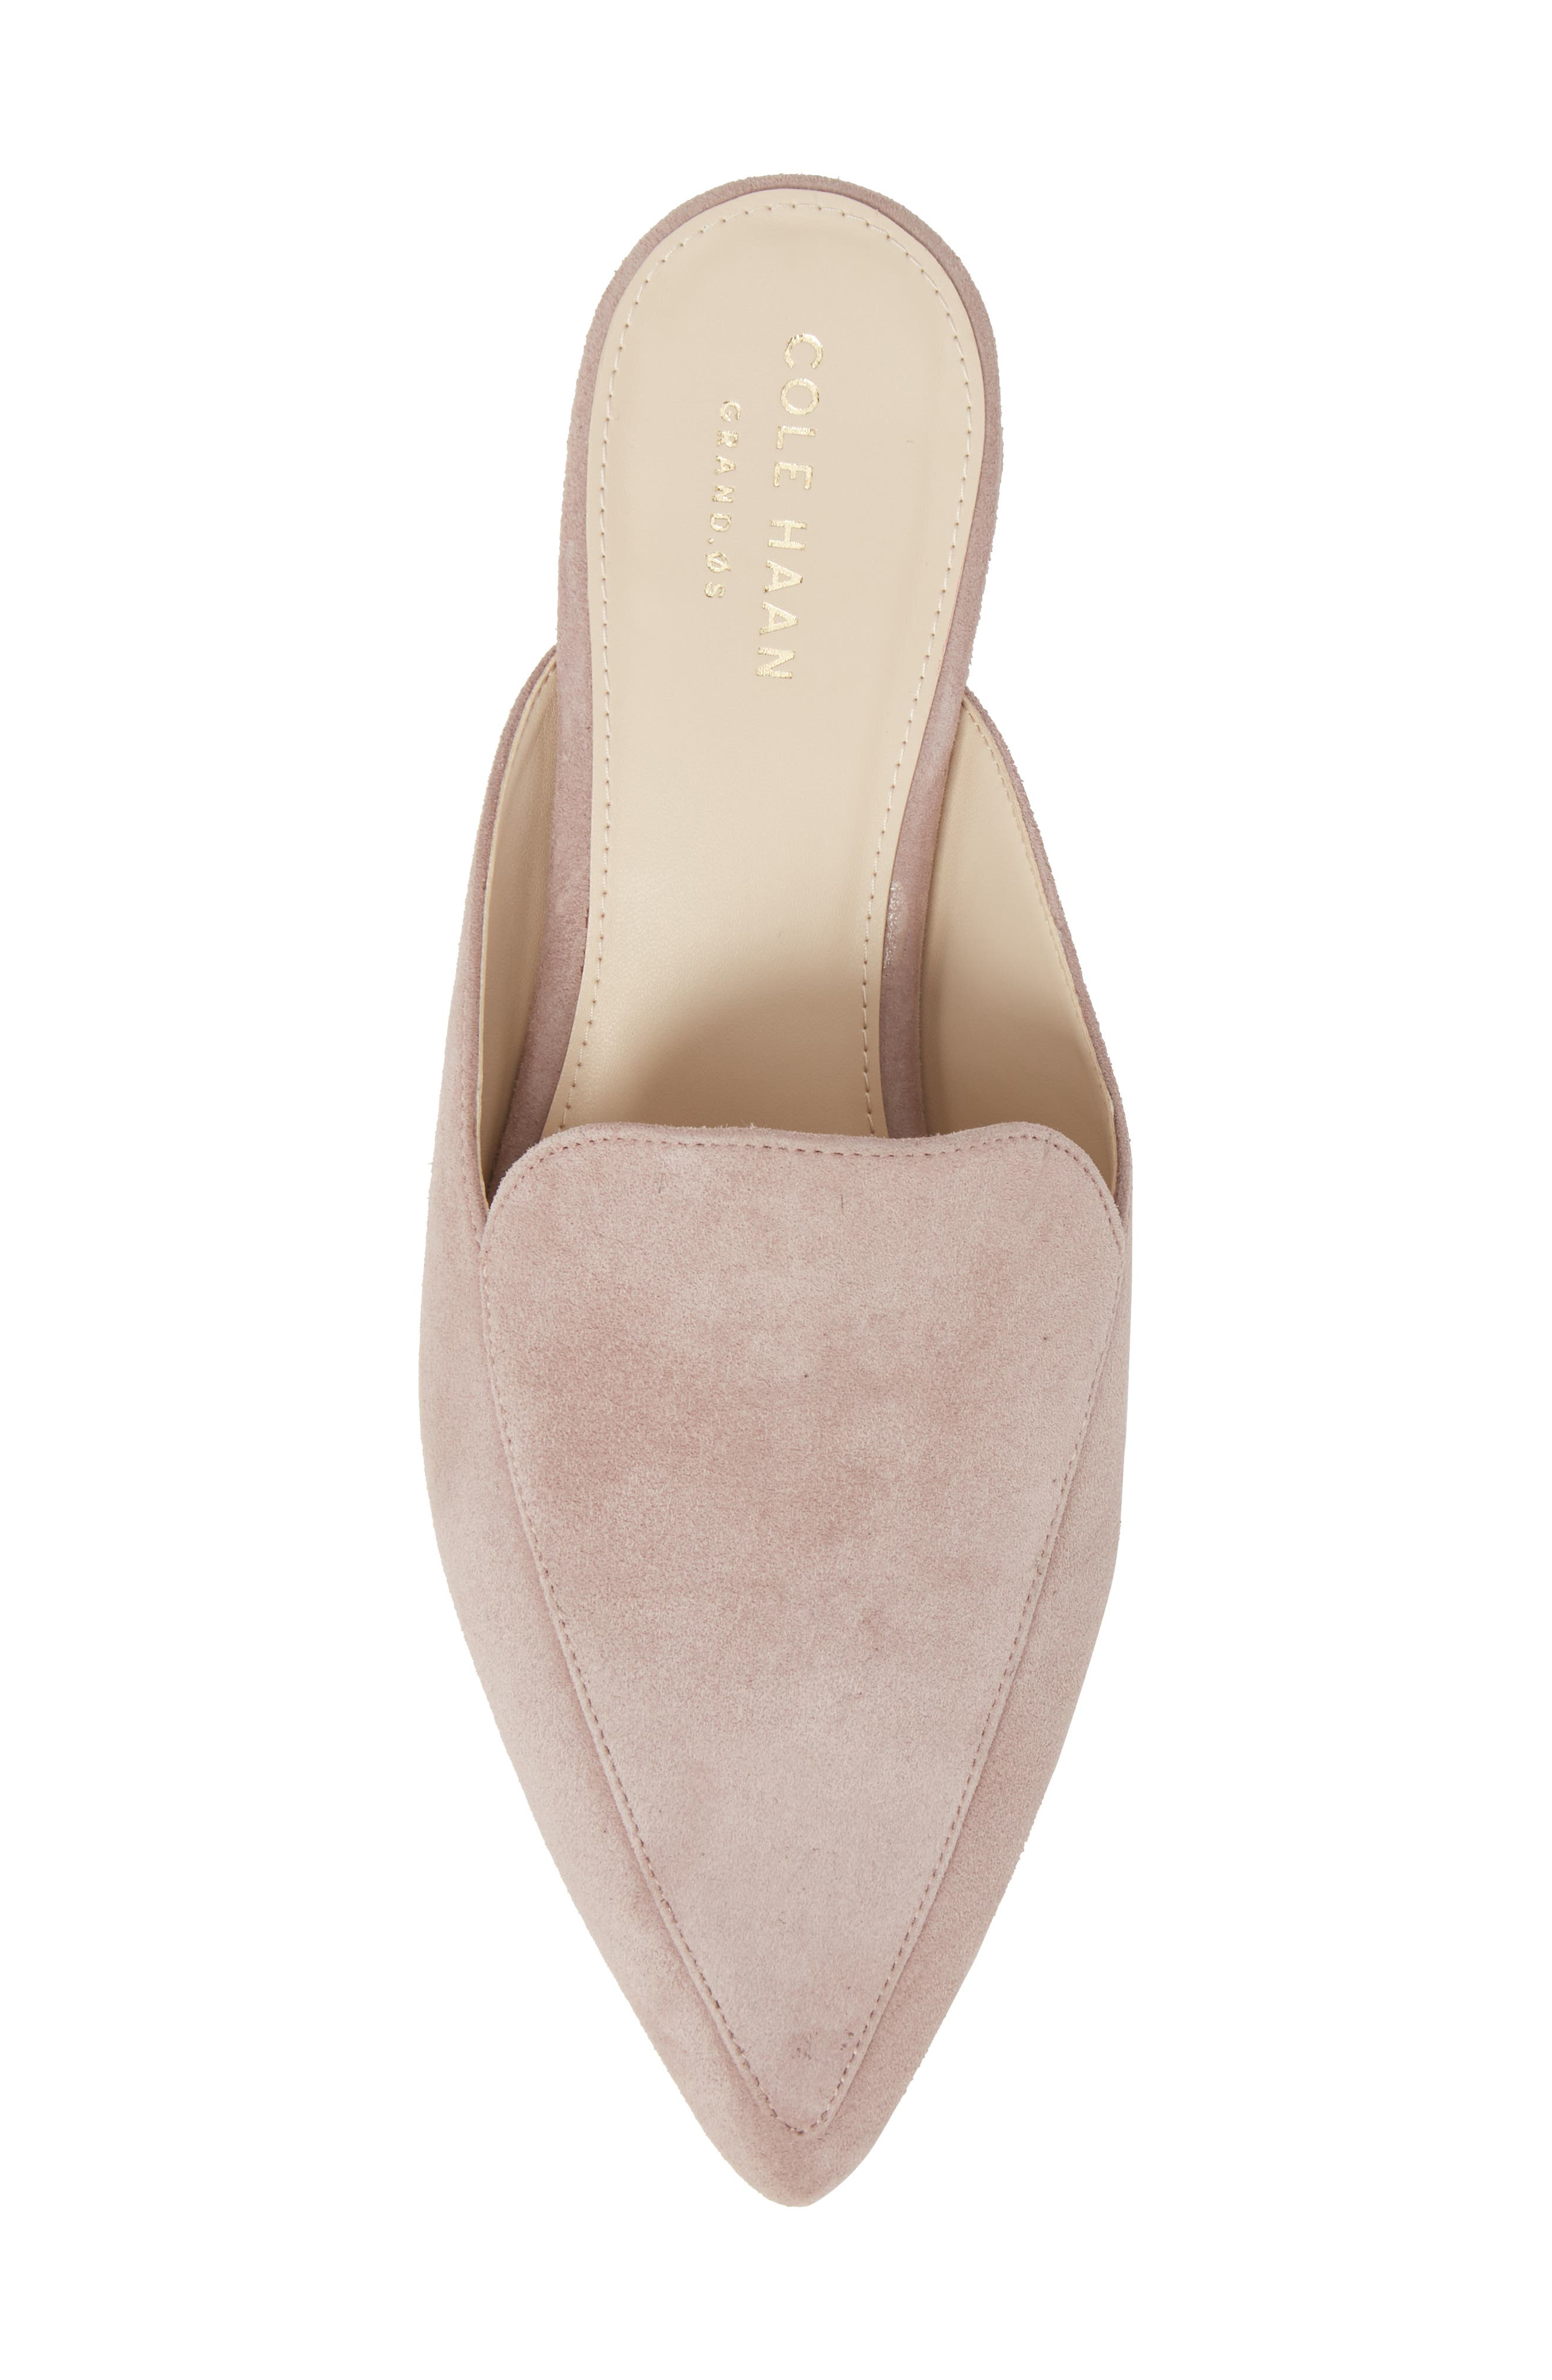 Piper Loafer Mule,                             Alternate thumbnail 5, color,                             Twilight Mauve Suede